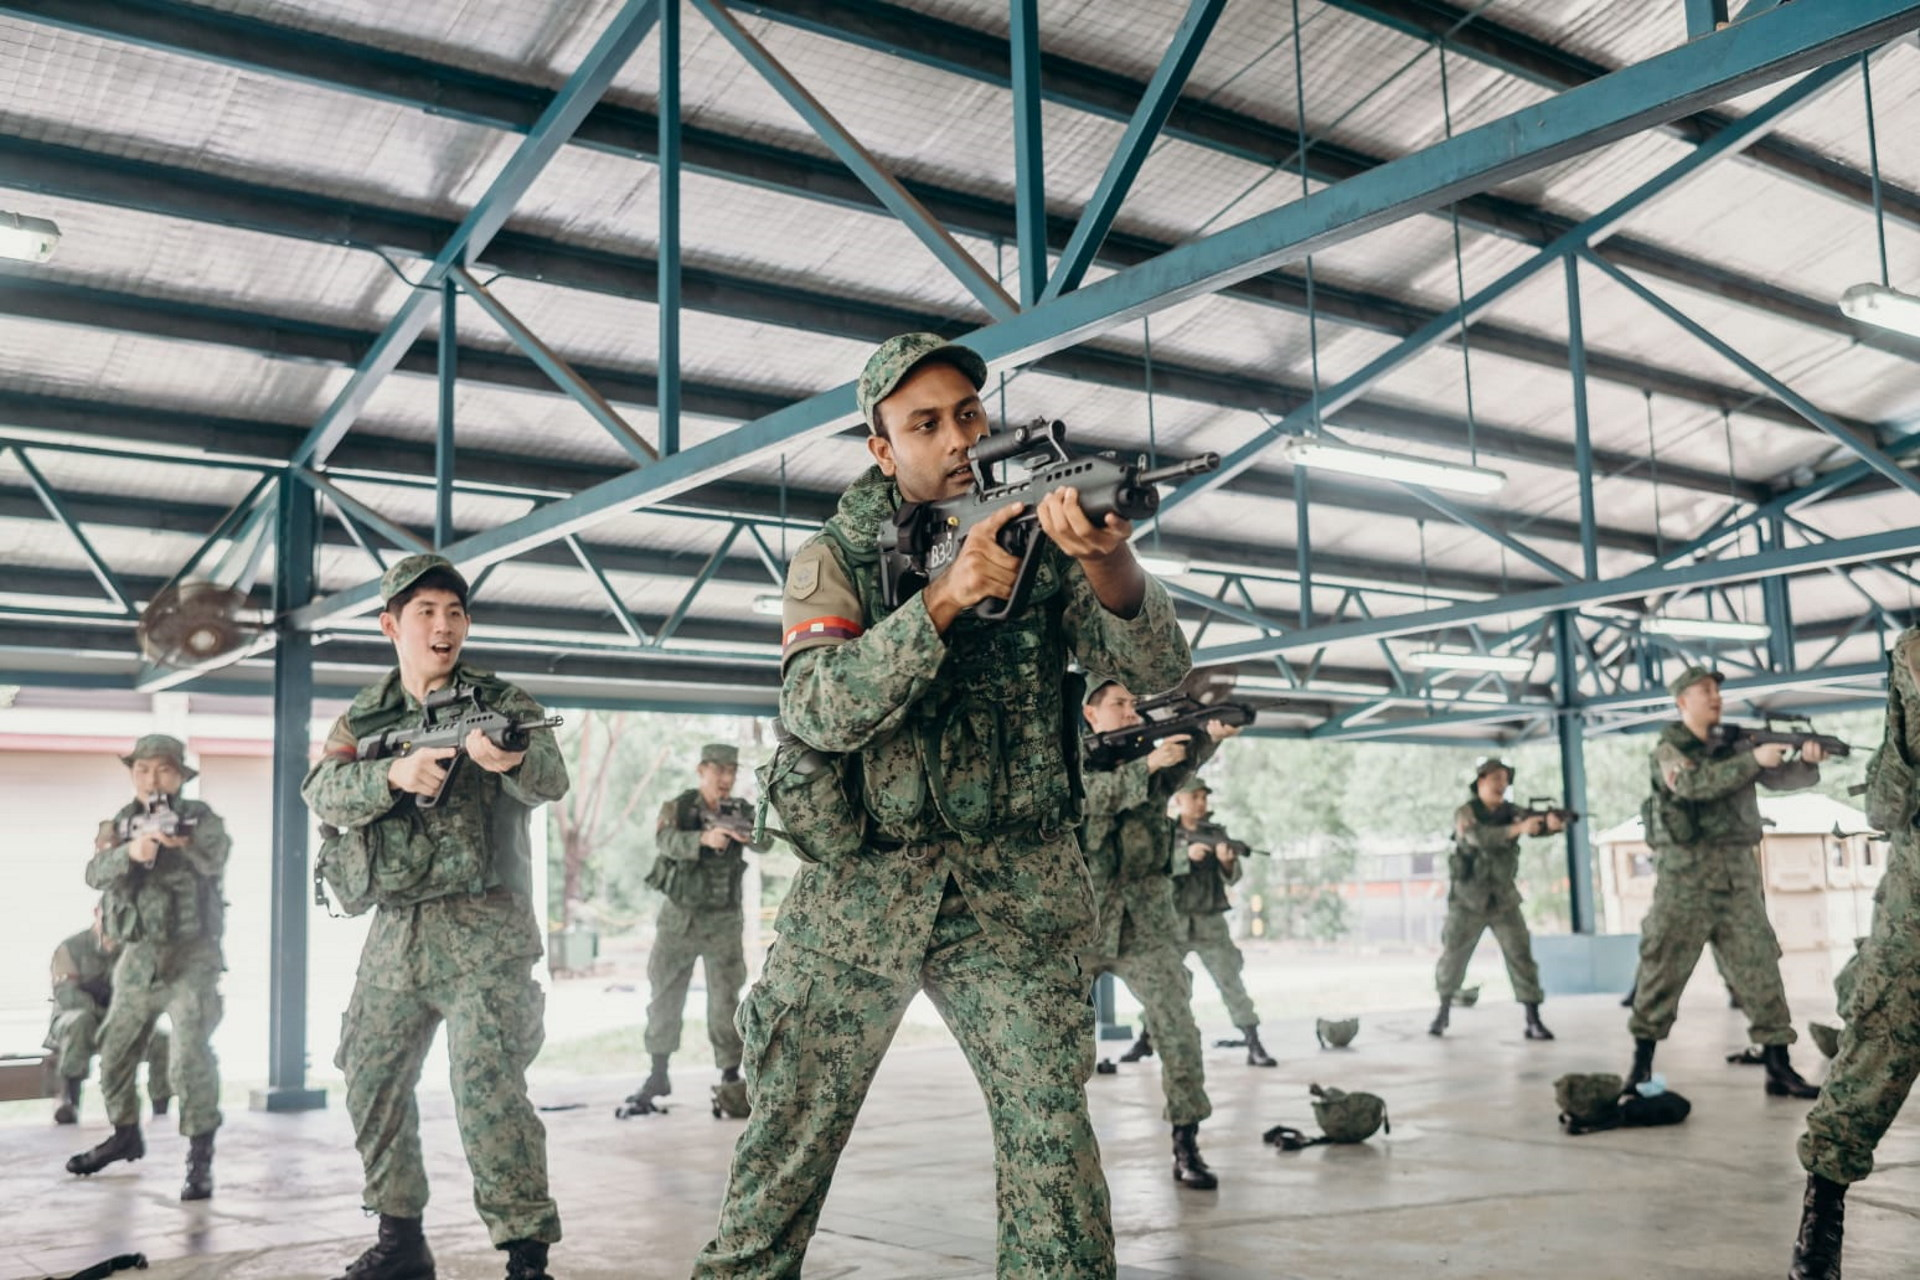 How the men of 735 Gds guarded Jurong Island amid COVID-19